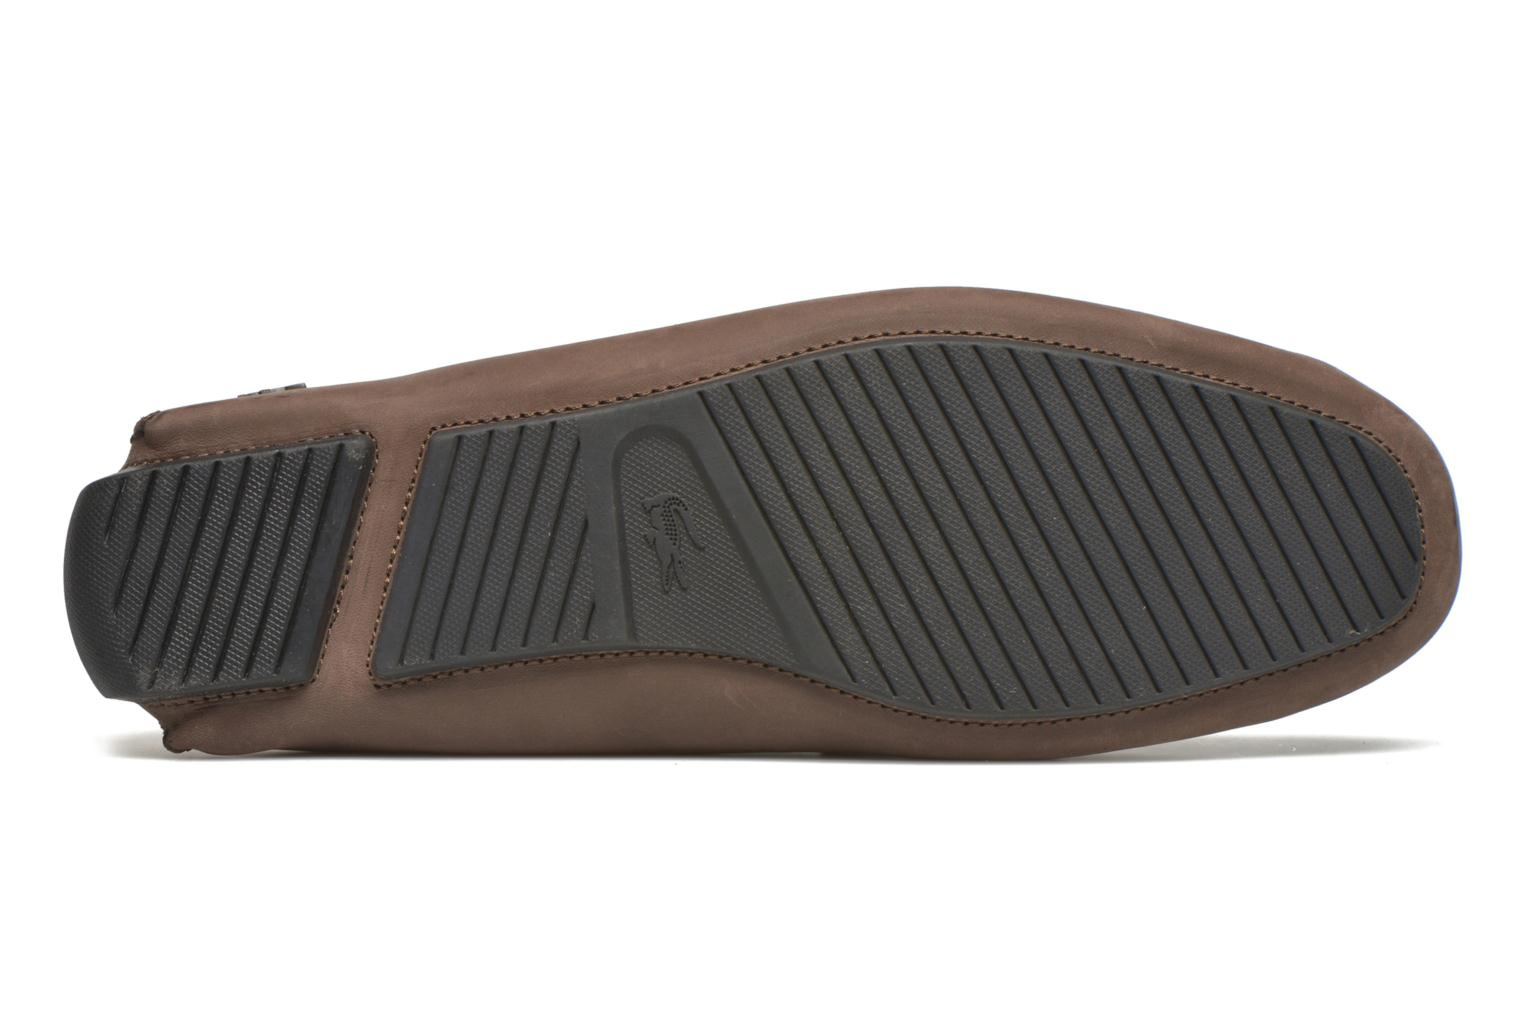 Piloter 316 1 Dark Brown